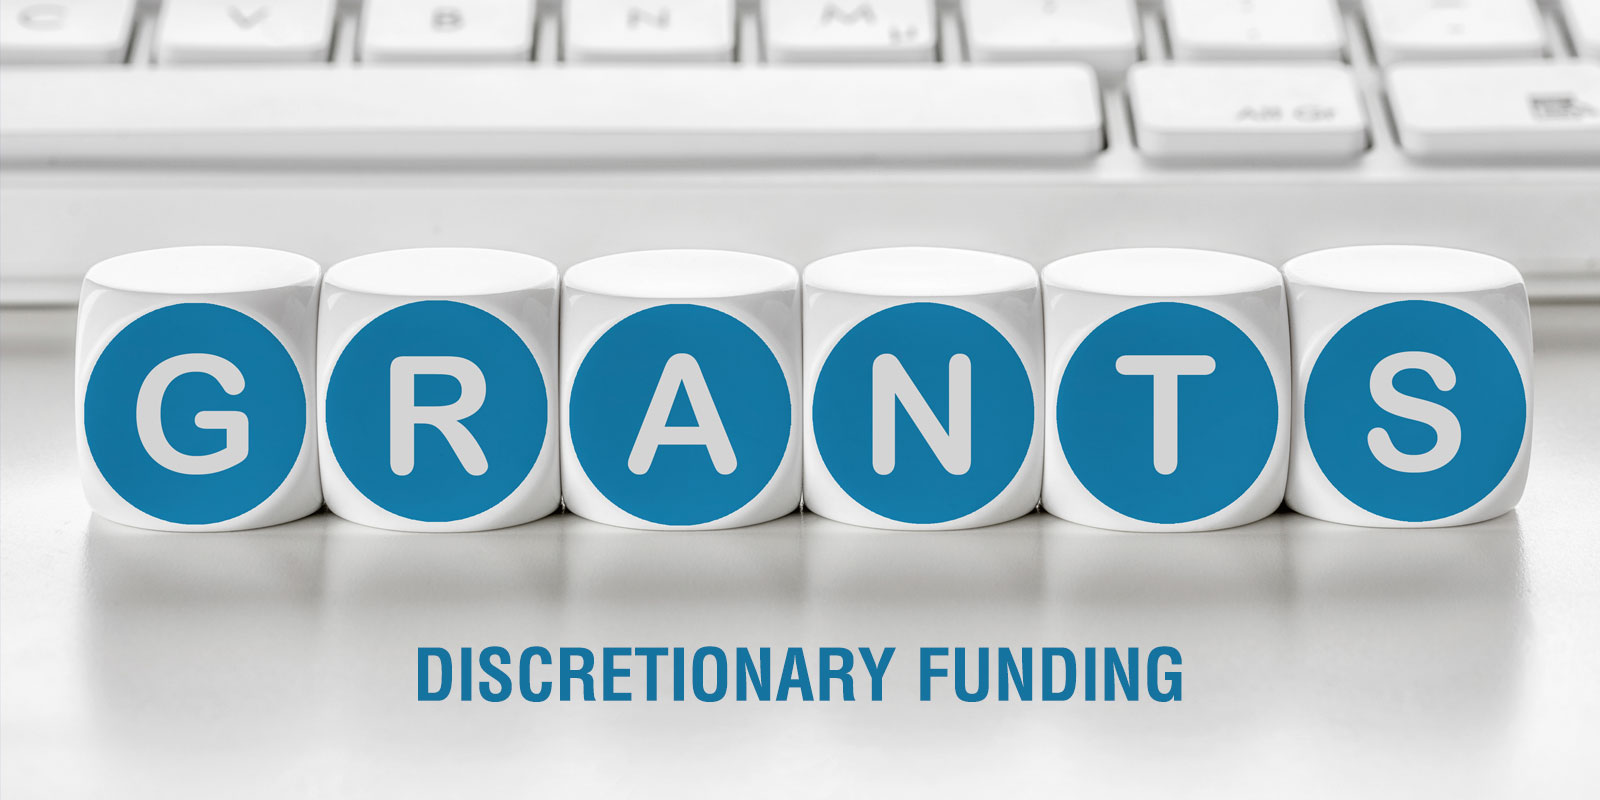 Discretionary Funding